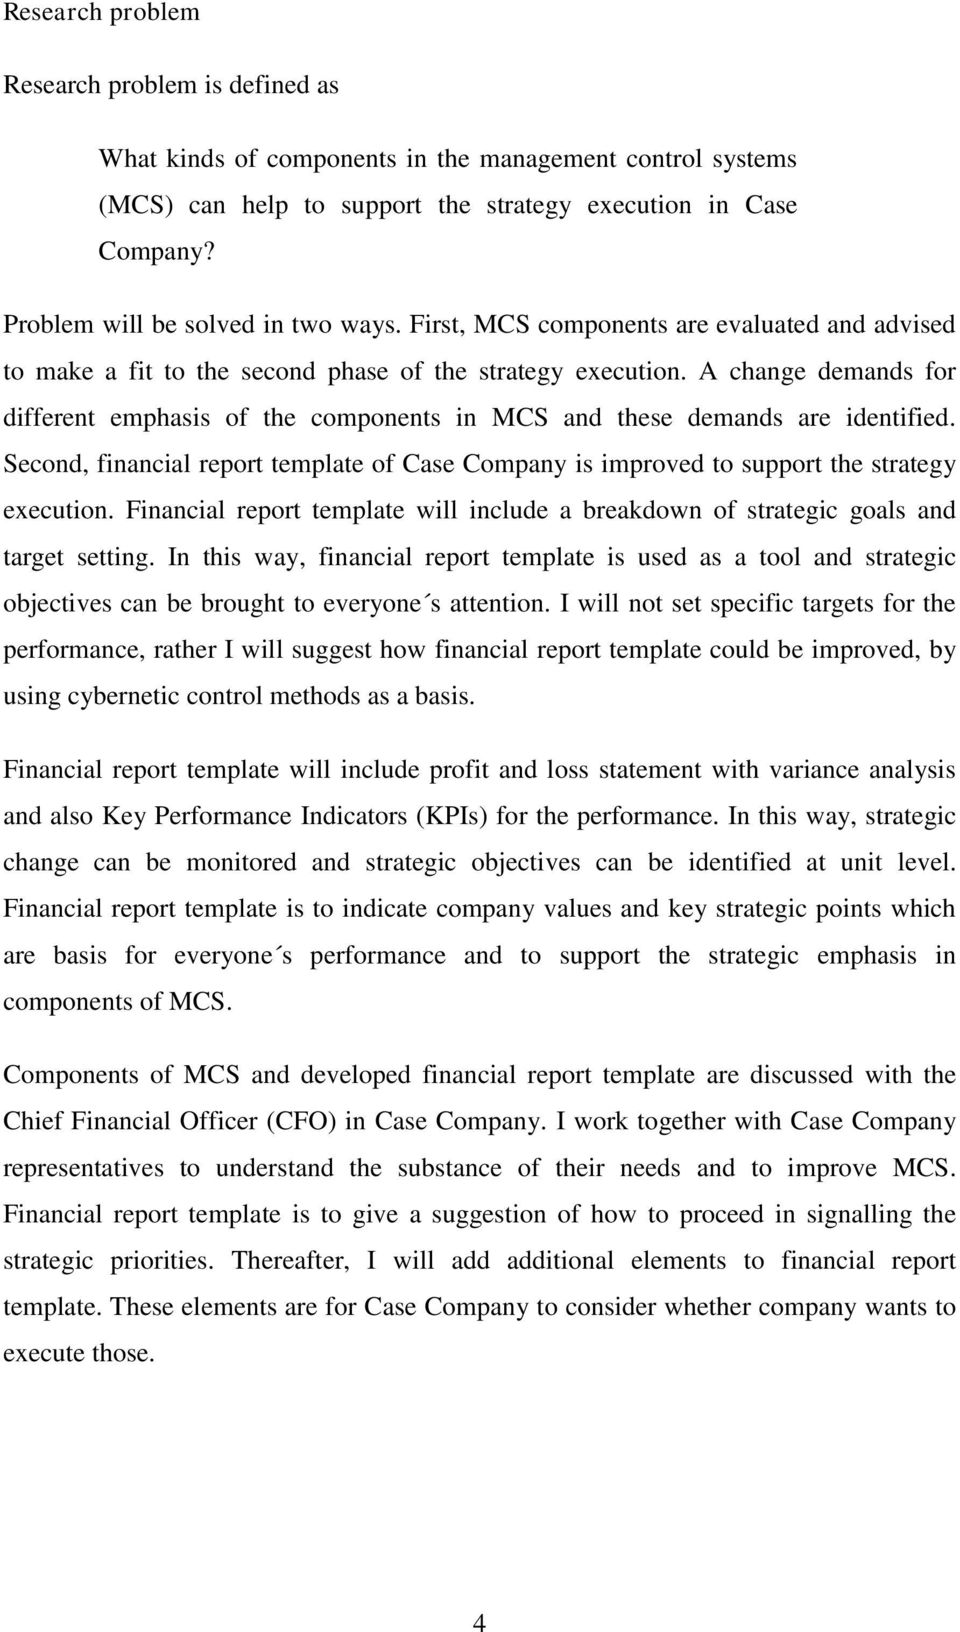 A change demands for different emphasis of the components in MCS and these demands are identified. Second, financial report template of Case Company is improved to support the strategy execution.